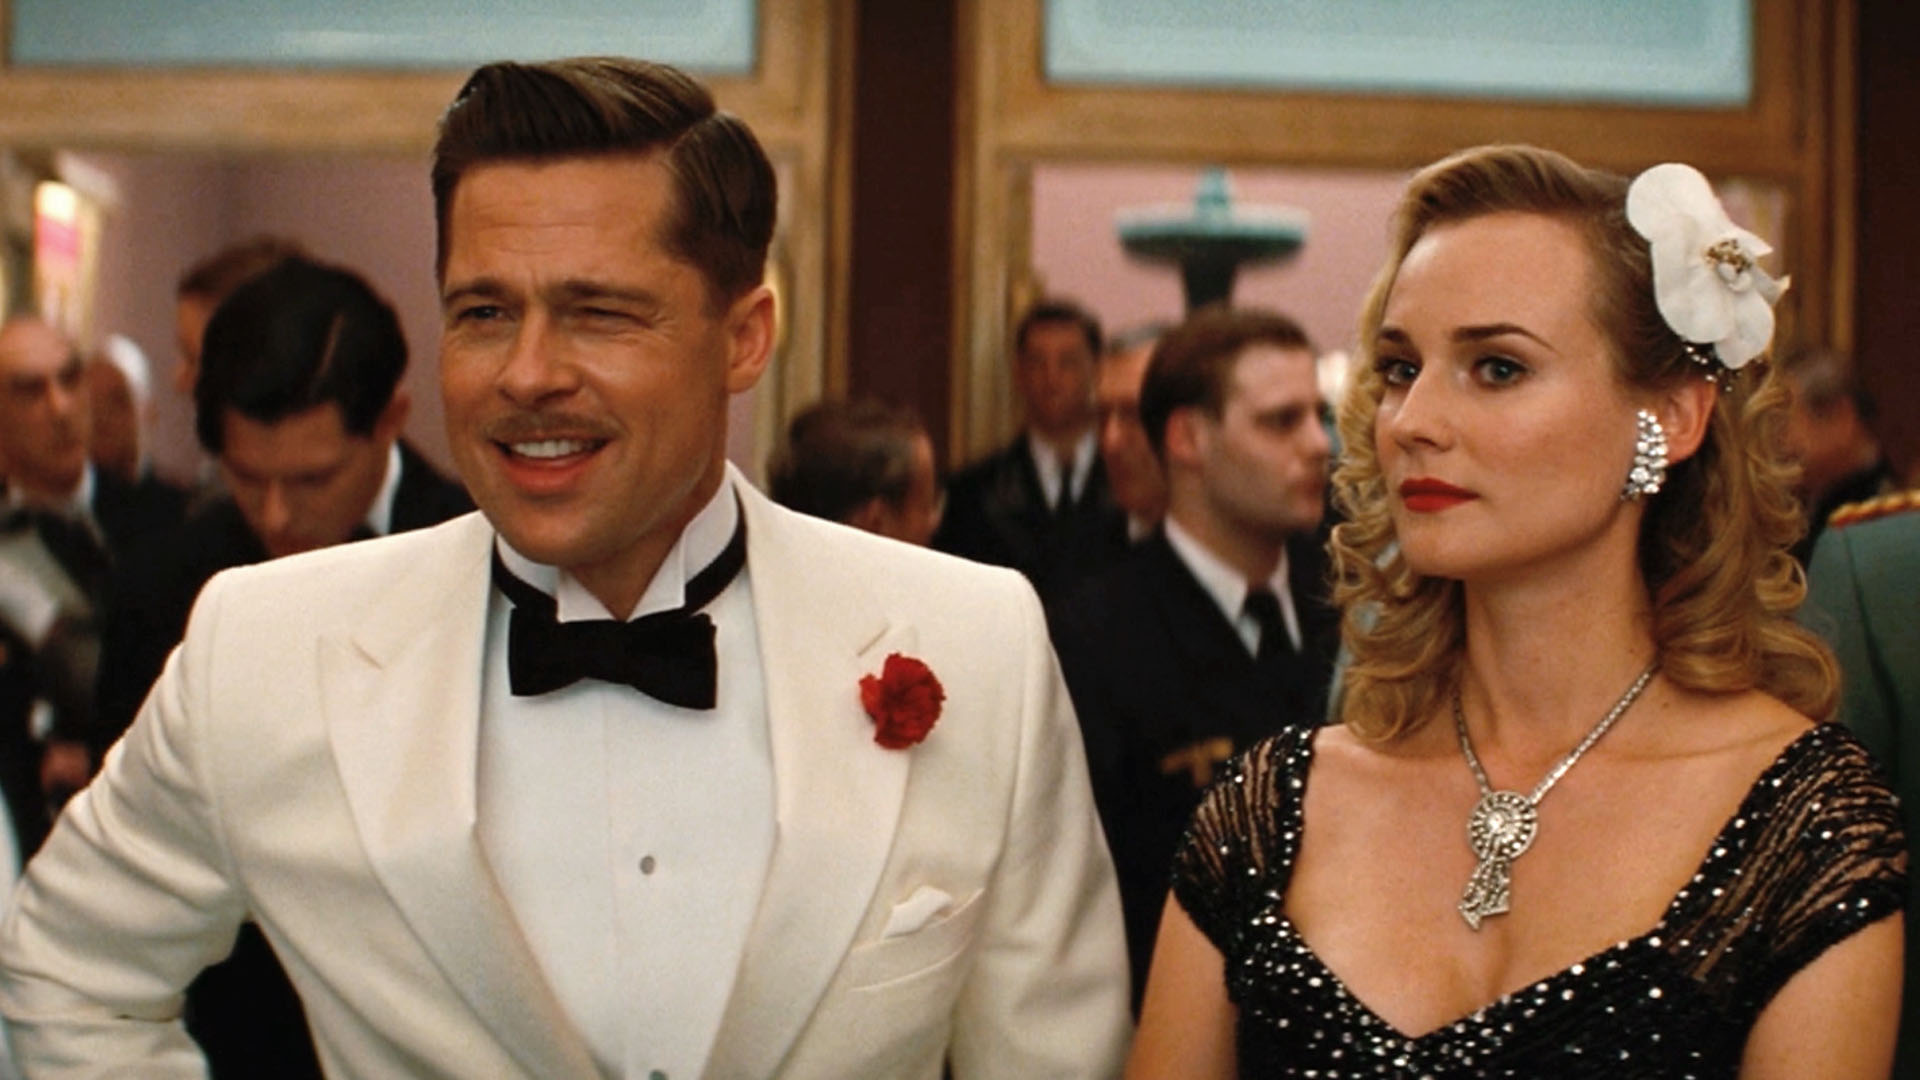 Image result for inglorious bastards brad pitt white tux